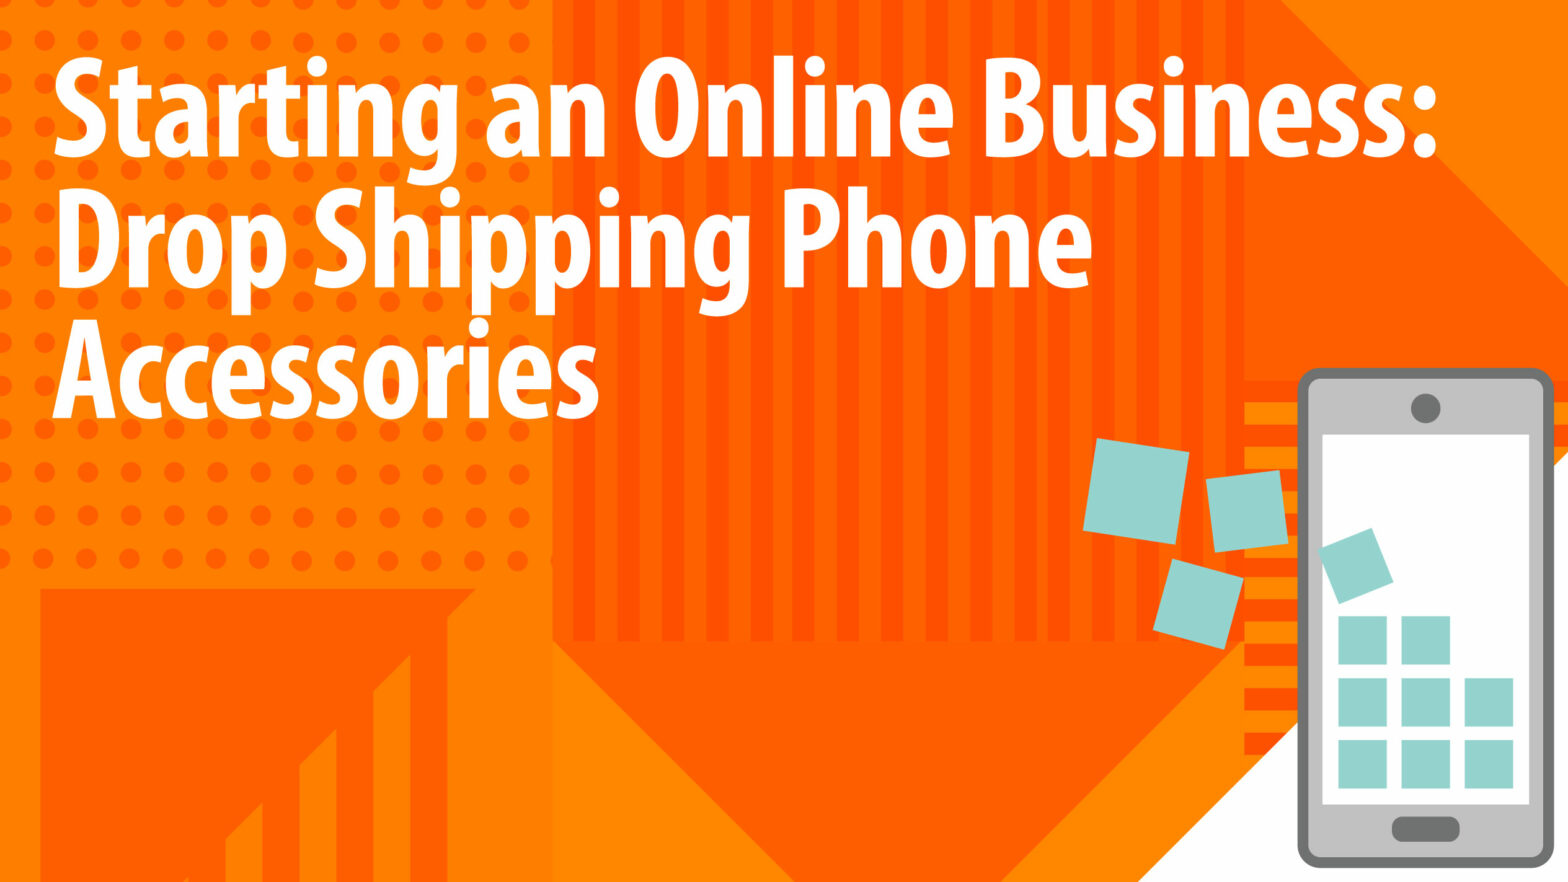 Drop Shipping Phone Accessories Article Header